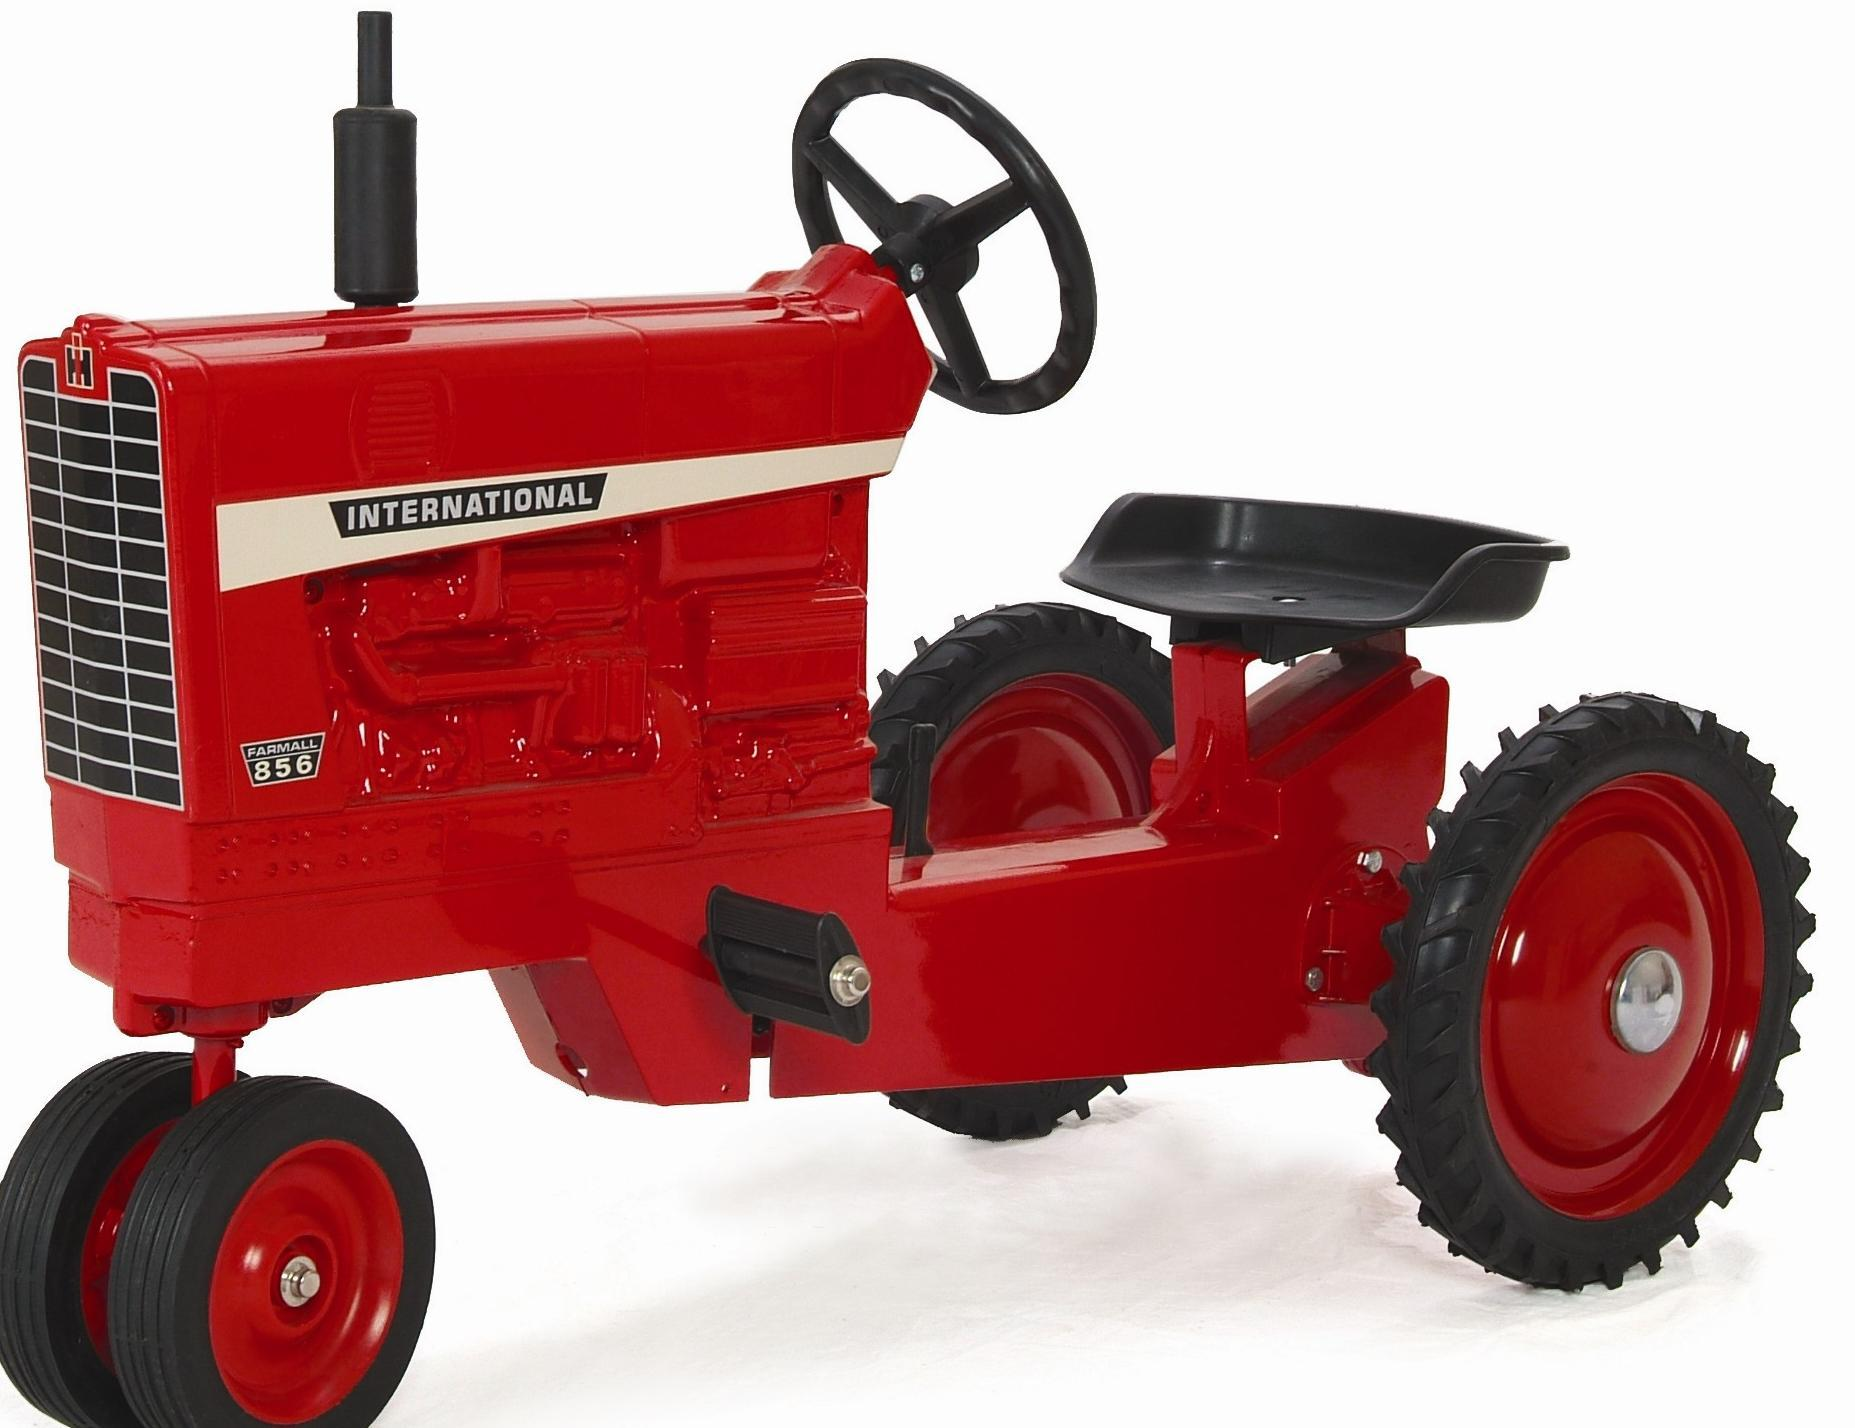 Ih 856 Tractor : International narrow front diecast pedal tractor by